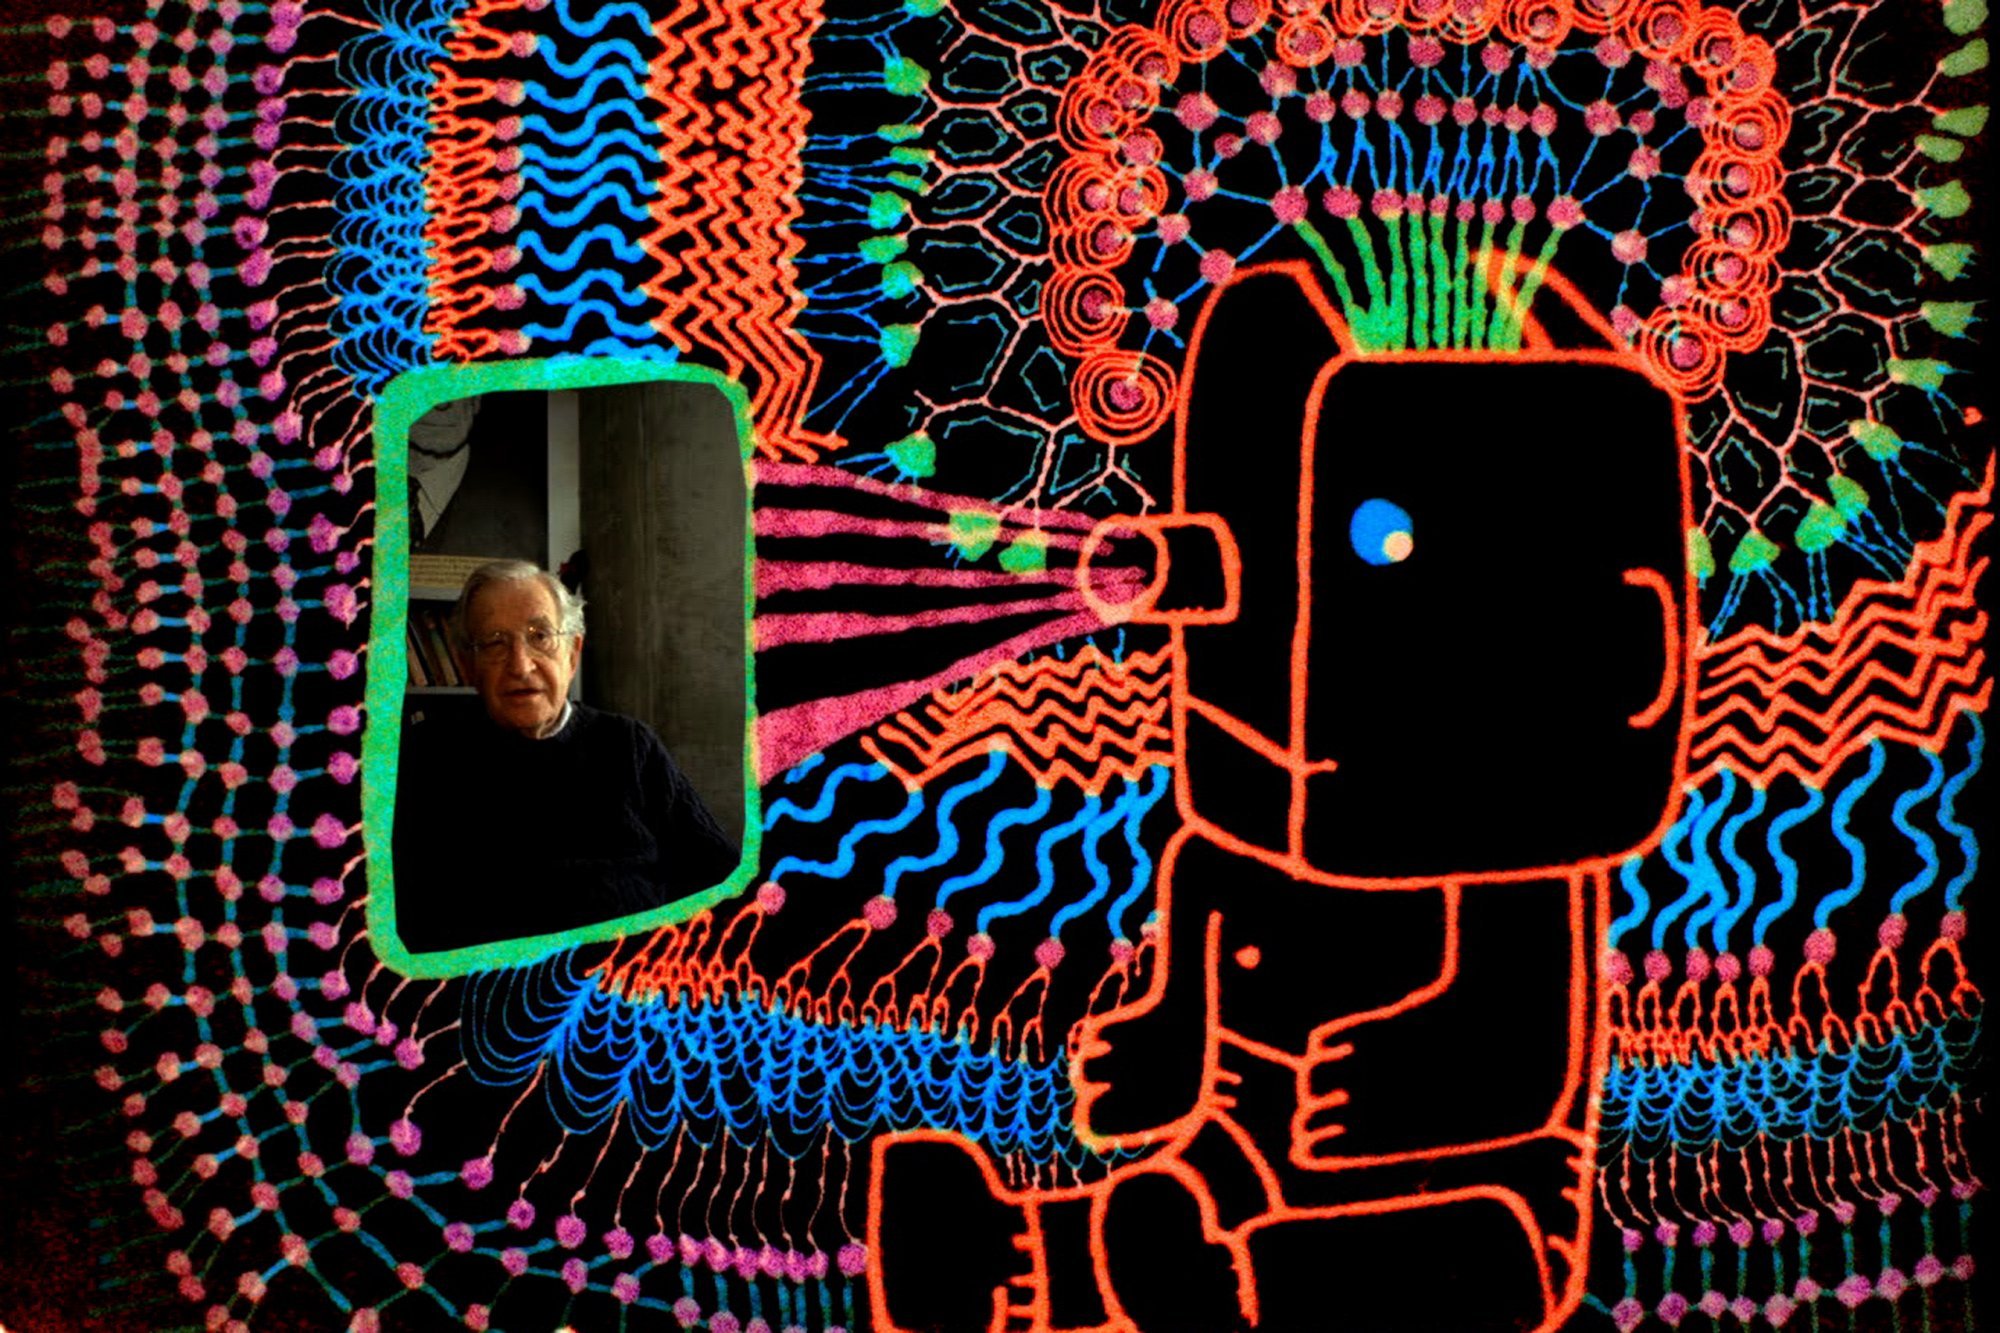 Noam Chomsky Talks About How Kids Acquire Language and Ideas in an Animated Video by Michel Gondry